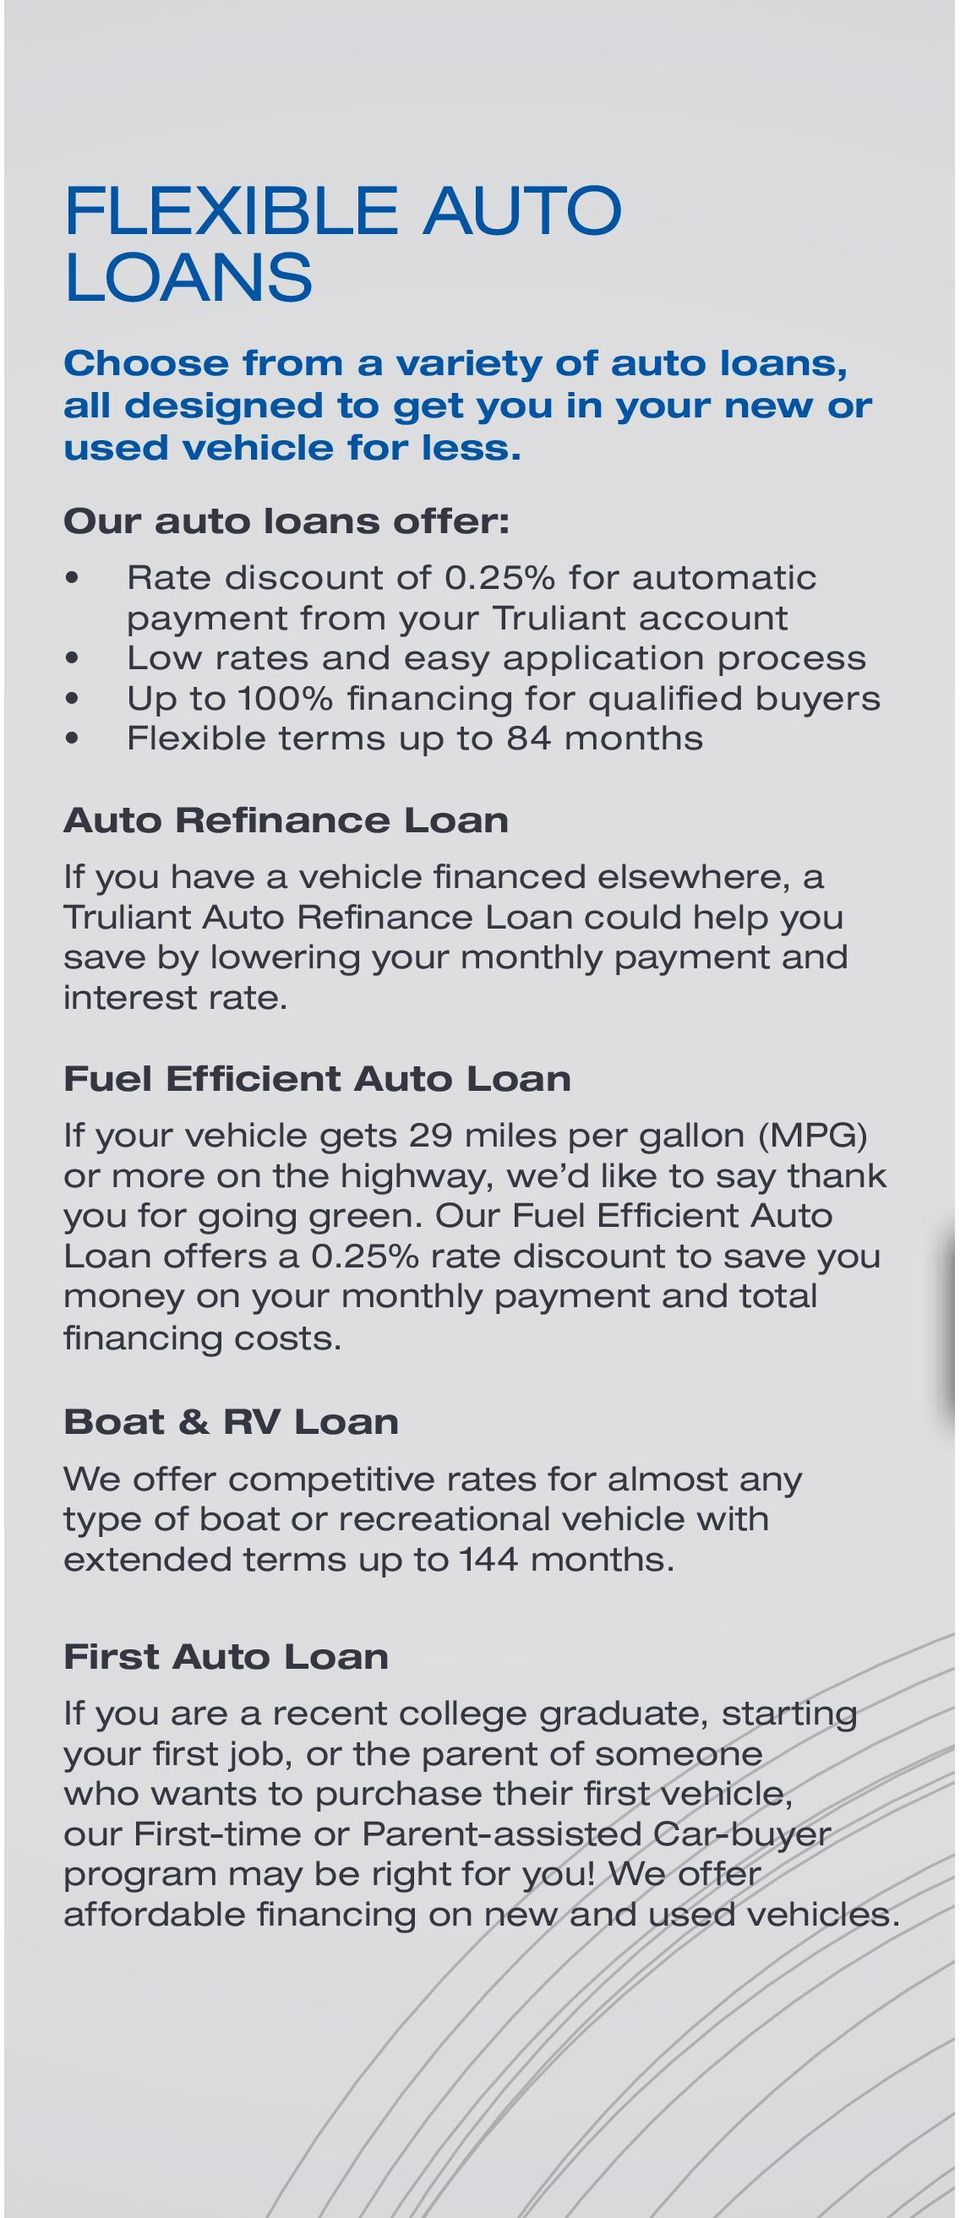 vehicle financed elsewhere, a Truliant Auto Refinance Loan could help you save by lowering your monthly payment and interest rate.